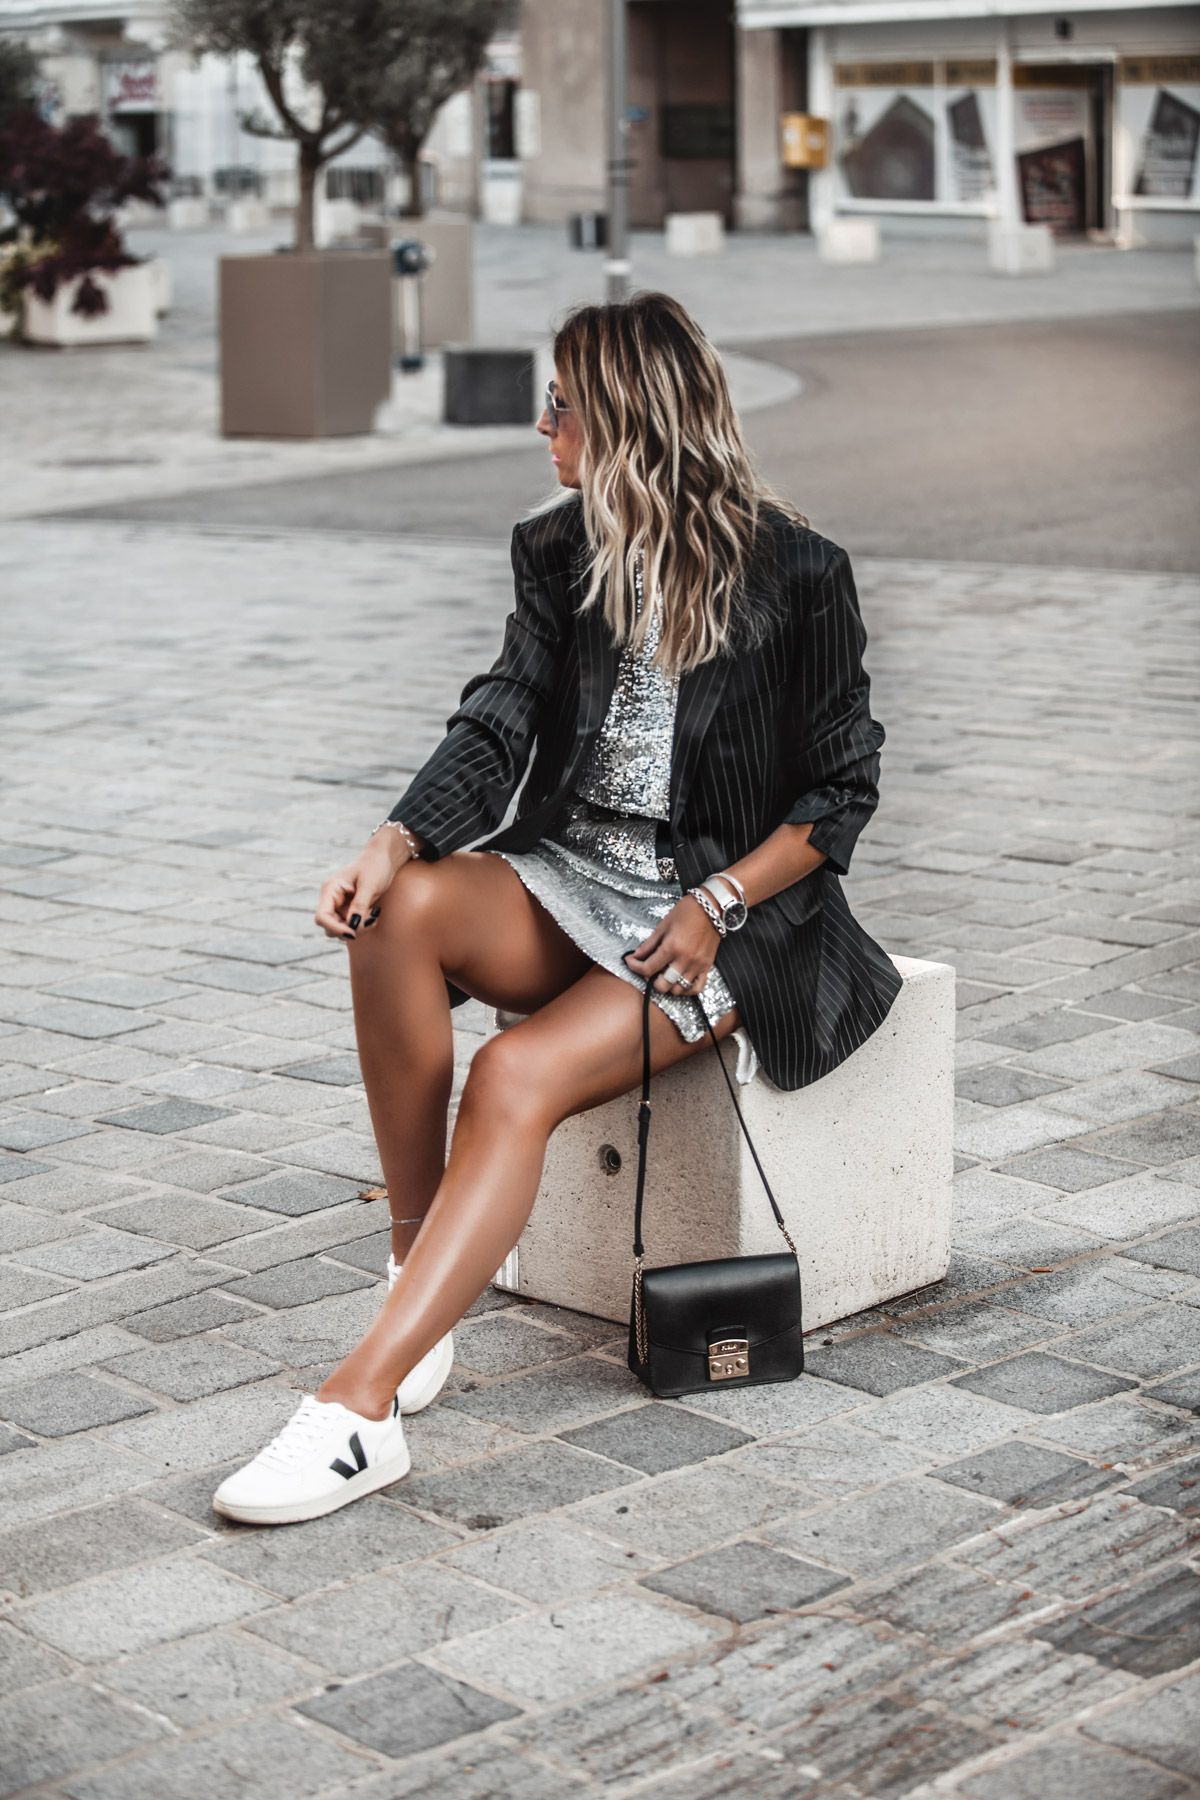 Sequin Dress With Blazer And Sneakers Jennysgou Dress And Sneakers Outfit Winter Dress Outfits Blazer Dress [ 1800 x 1200 Pixel ]